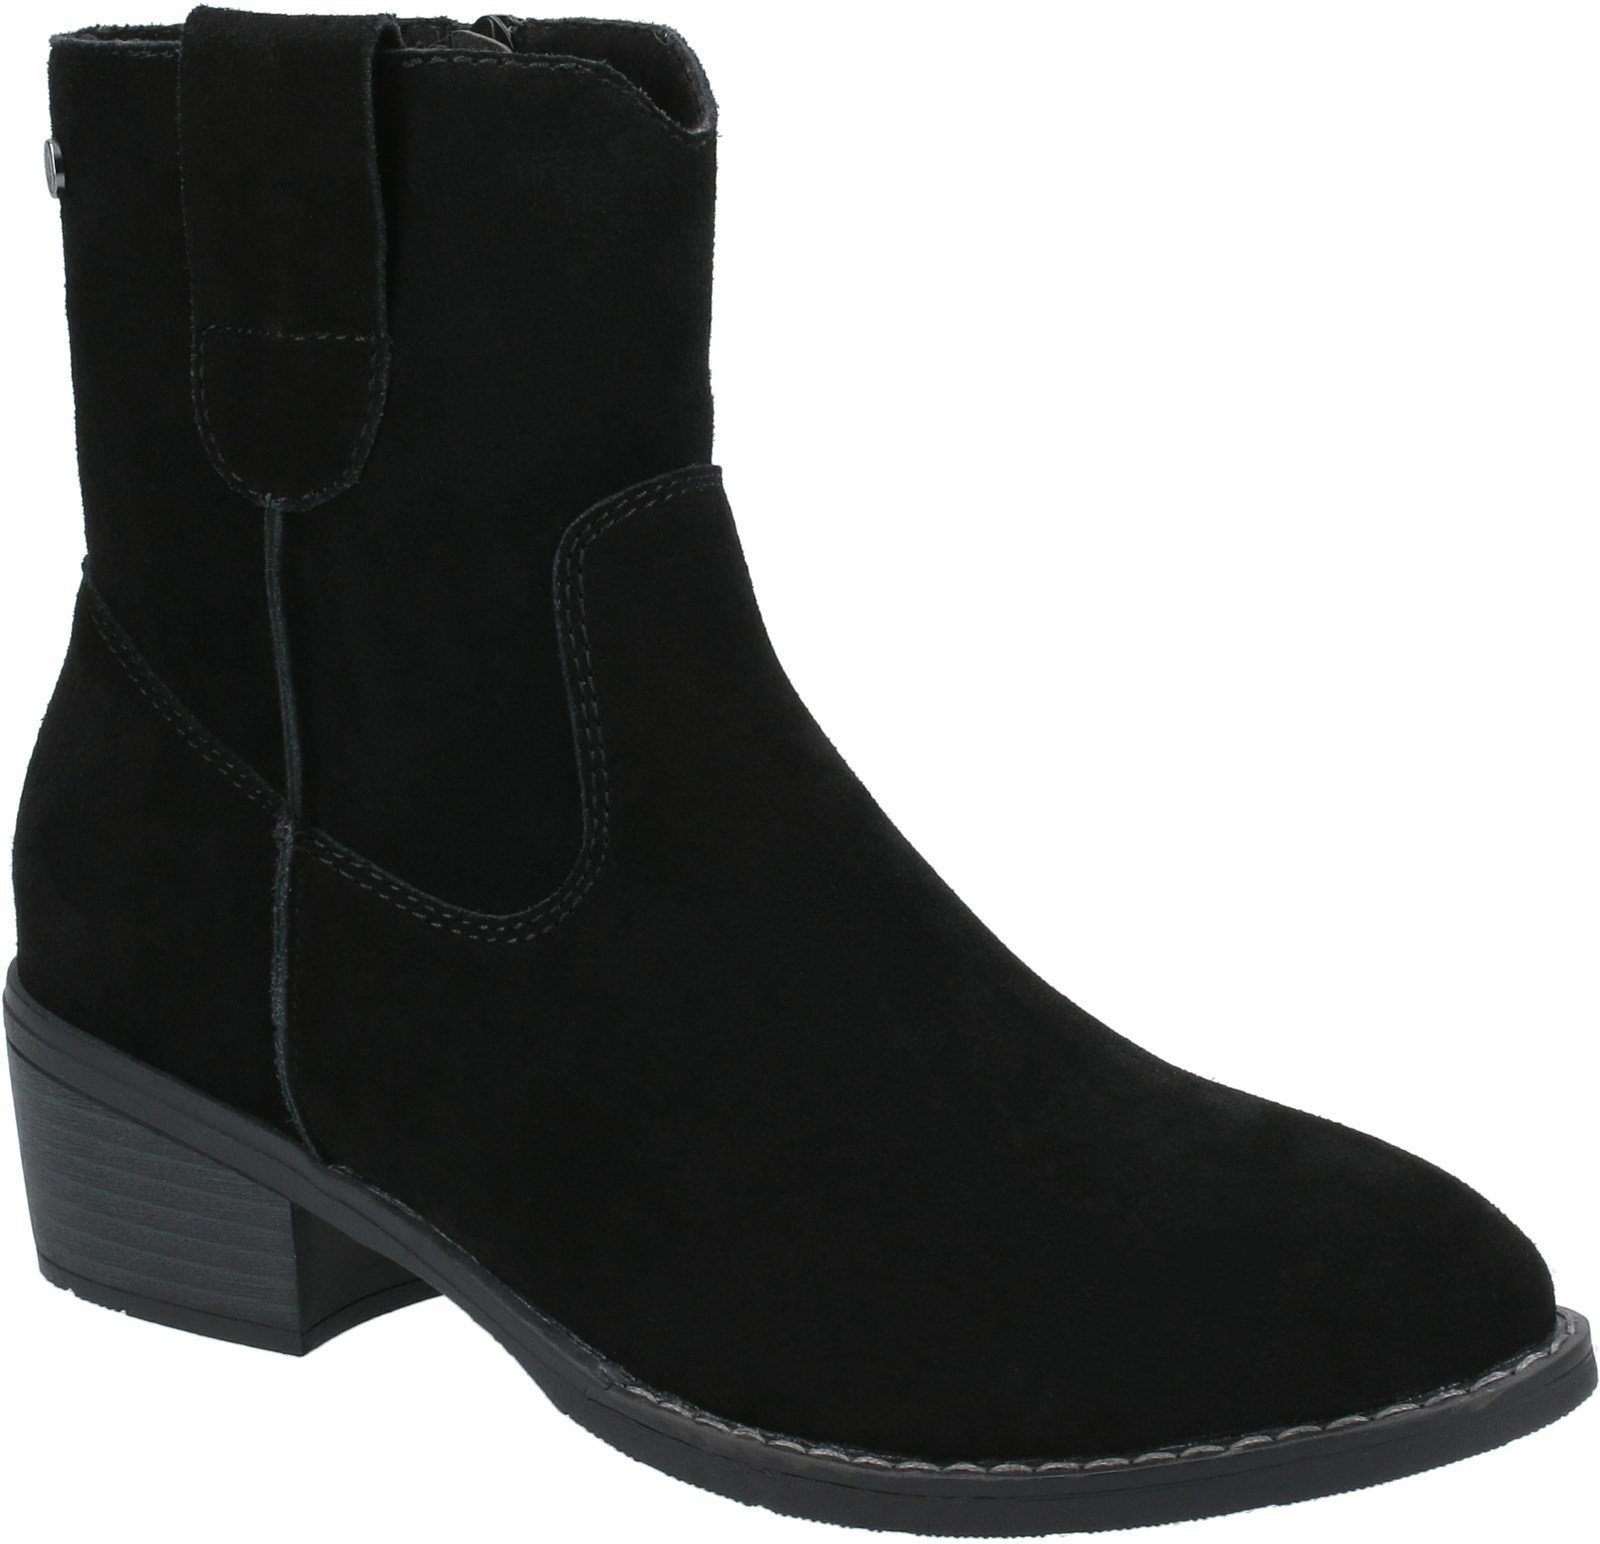 Hush Puppies Women's Iva Ladies Ankle Boots Various Colours 31187 - Black 3